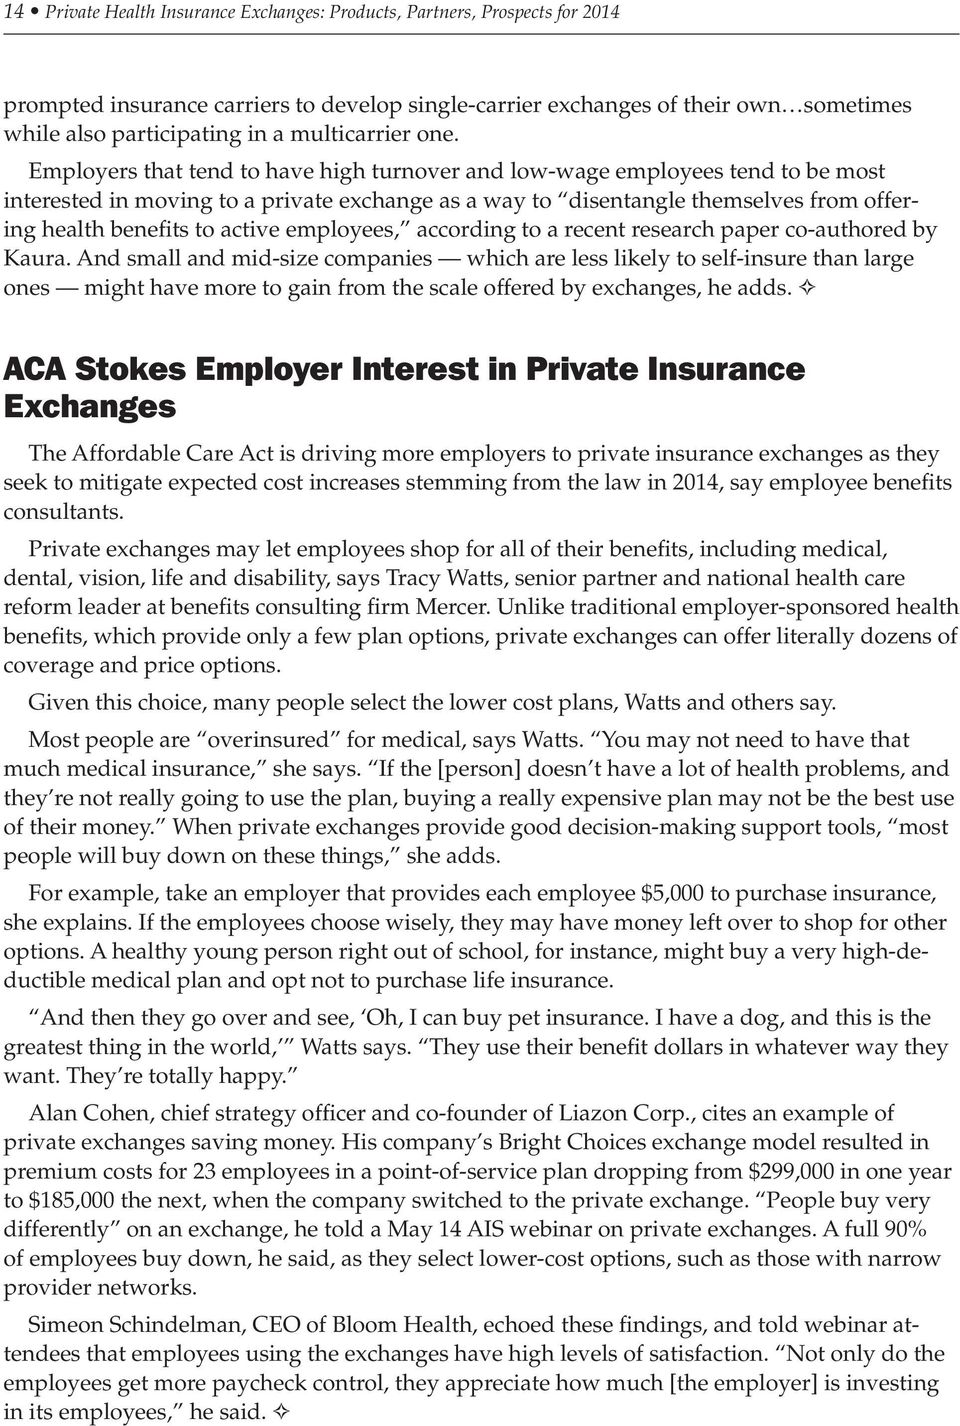 Employers that tend to have high turnover and low-wage employees tend to be most interested in moving to a private exchange as a way to disentangle themselves from offering health benefits to active